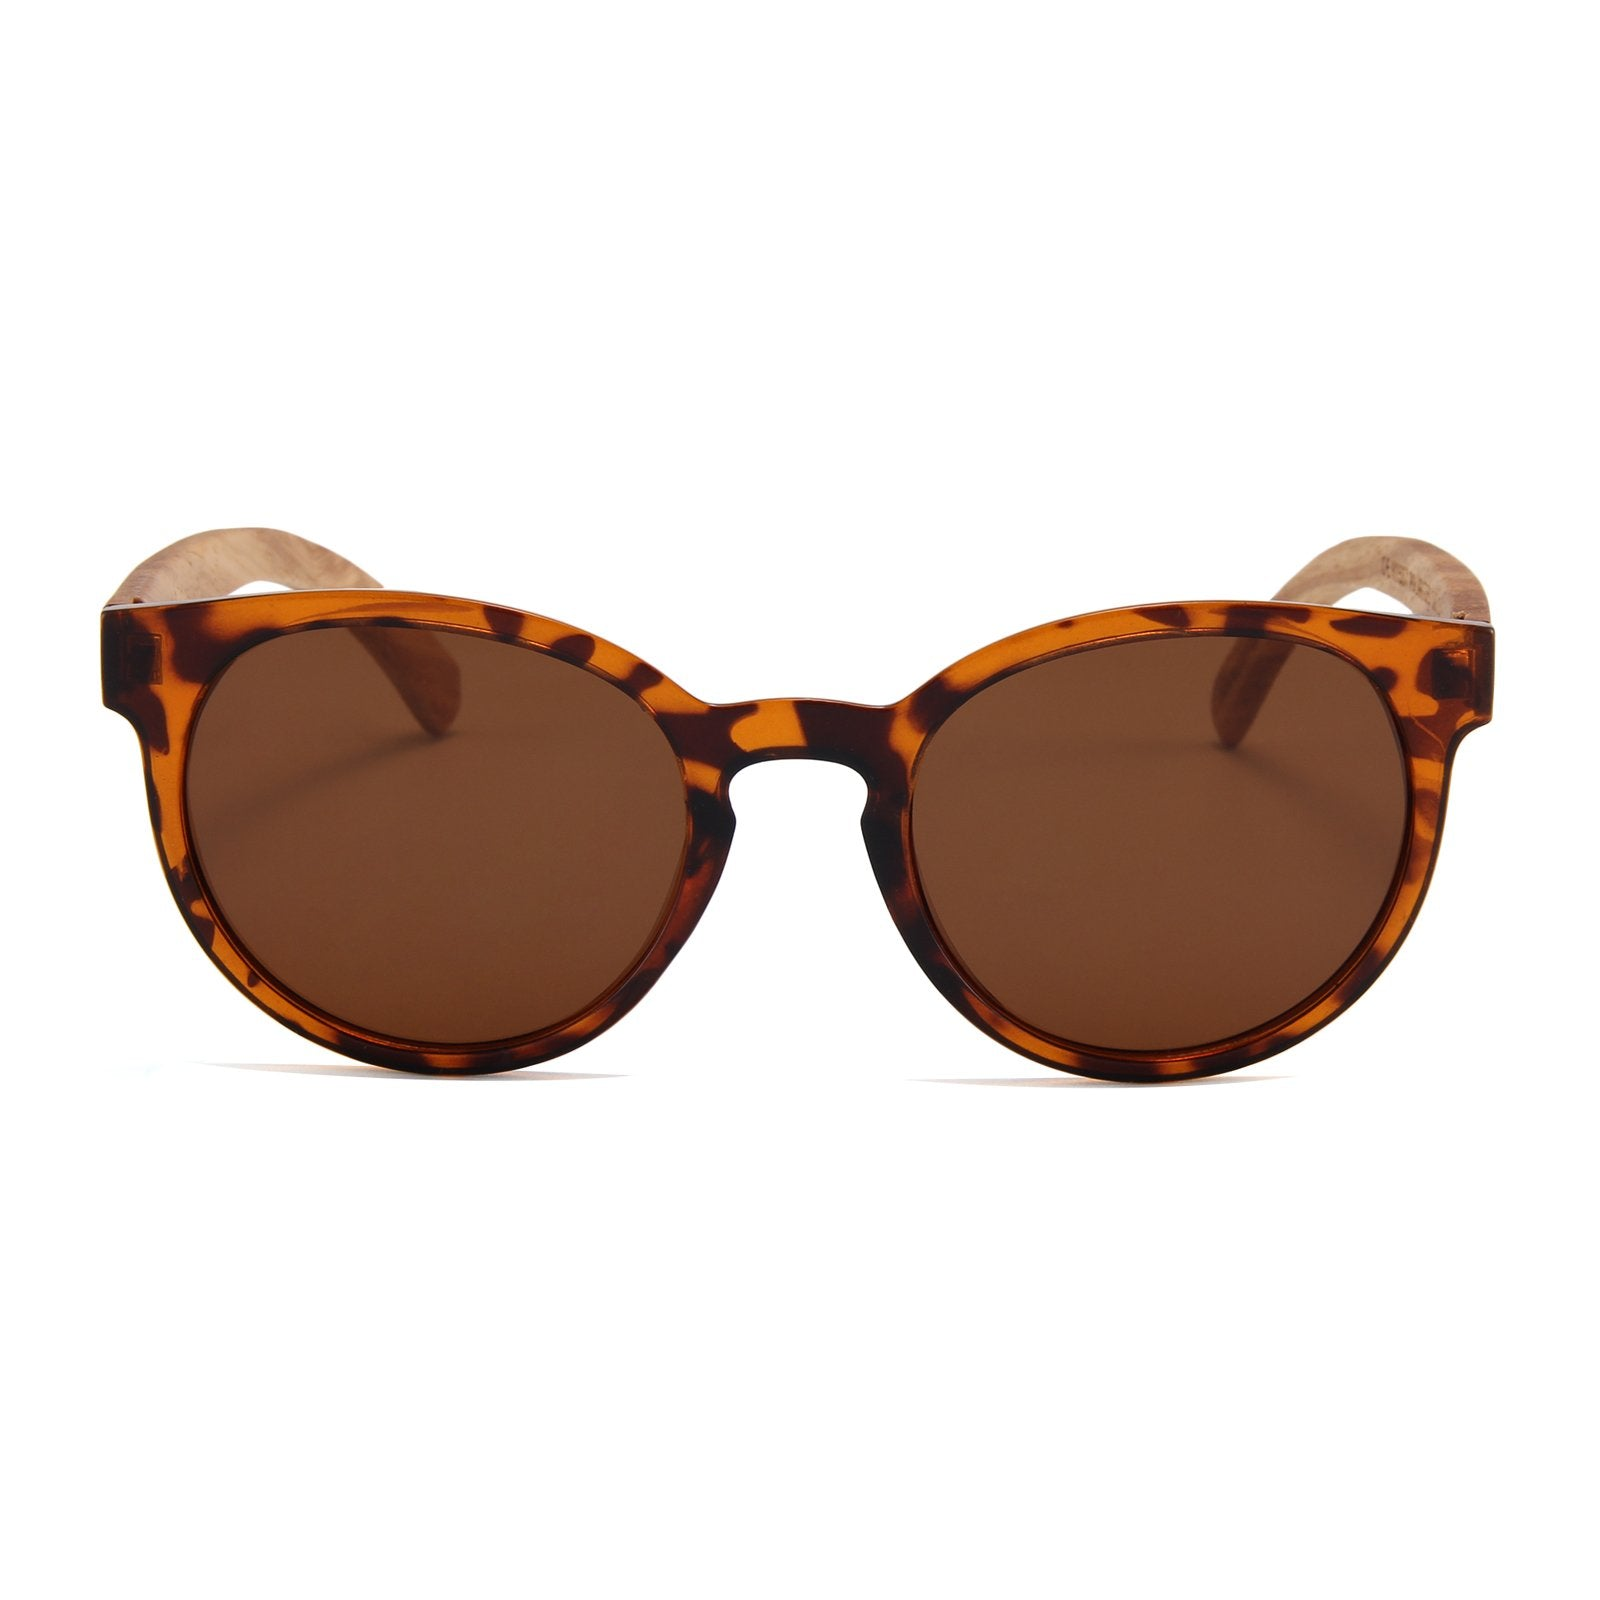 Zebra Wood Fighter Sunglasses (Tortoise Shell)